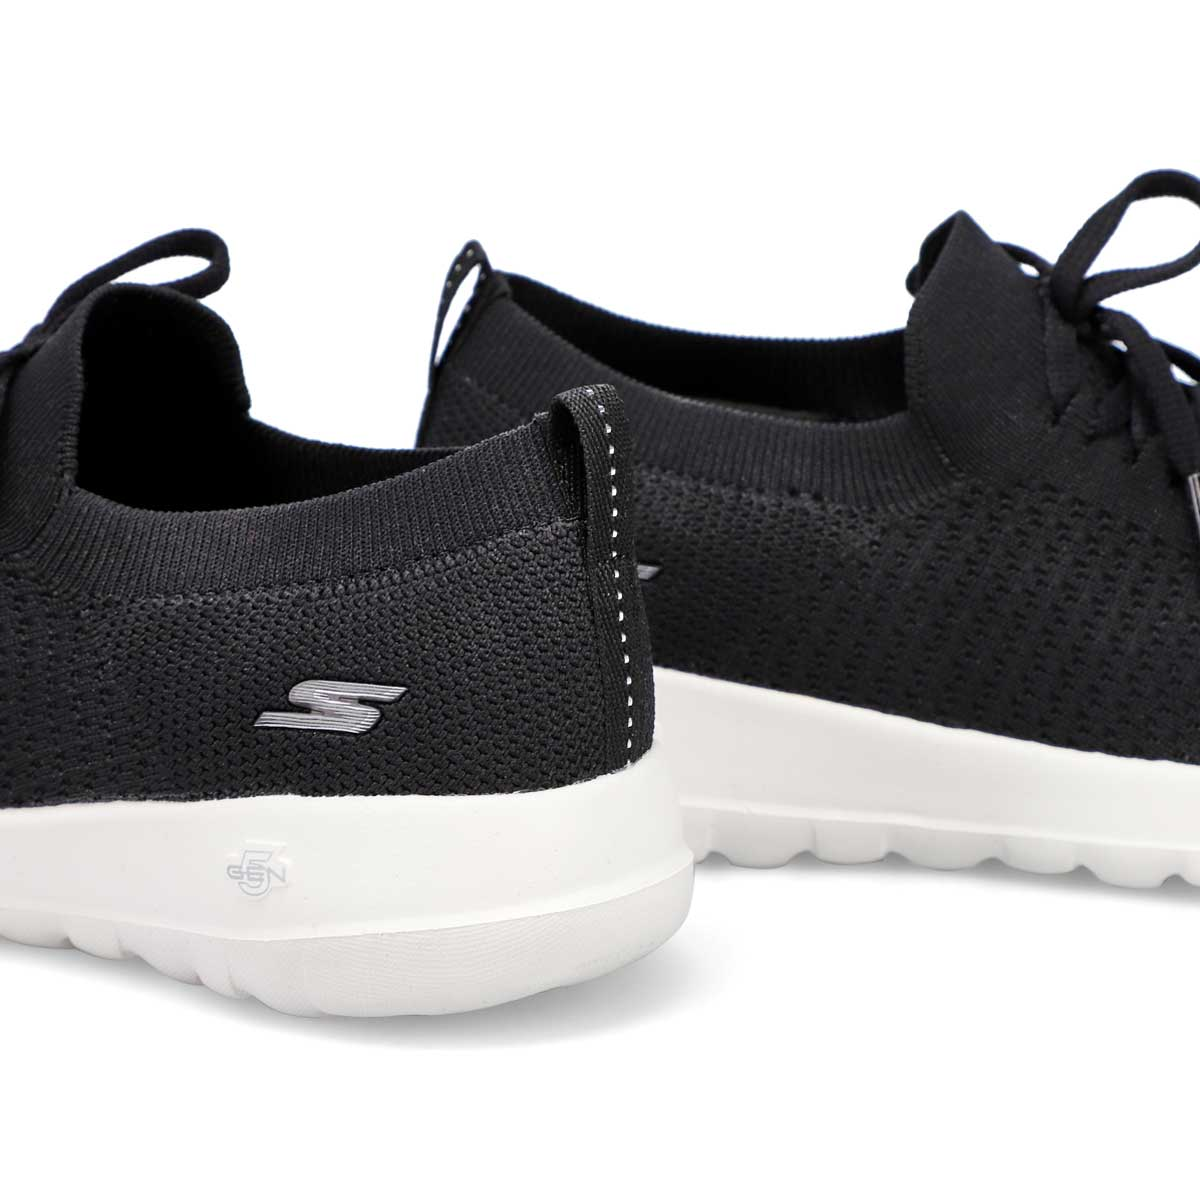 Women's Go Walk Joy Sneaker - Black/White